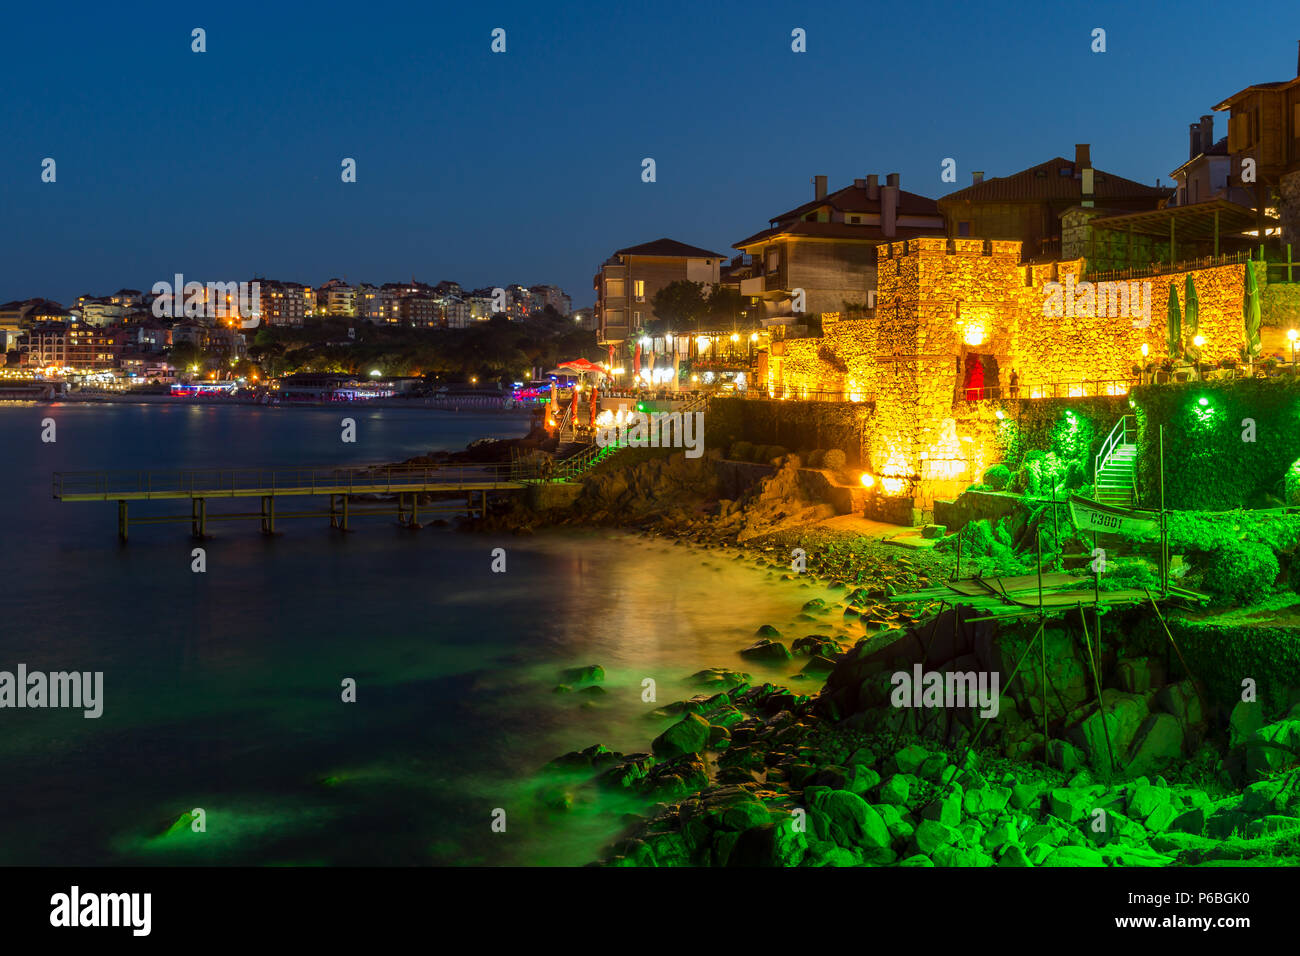 Night photo of reconstructed gate part of Sozopol ancient fortifications, Bulgaria - Stock Image